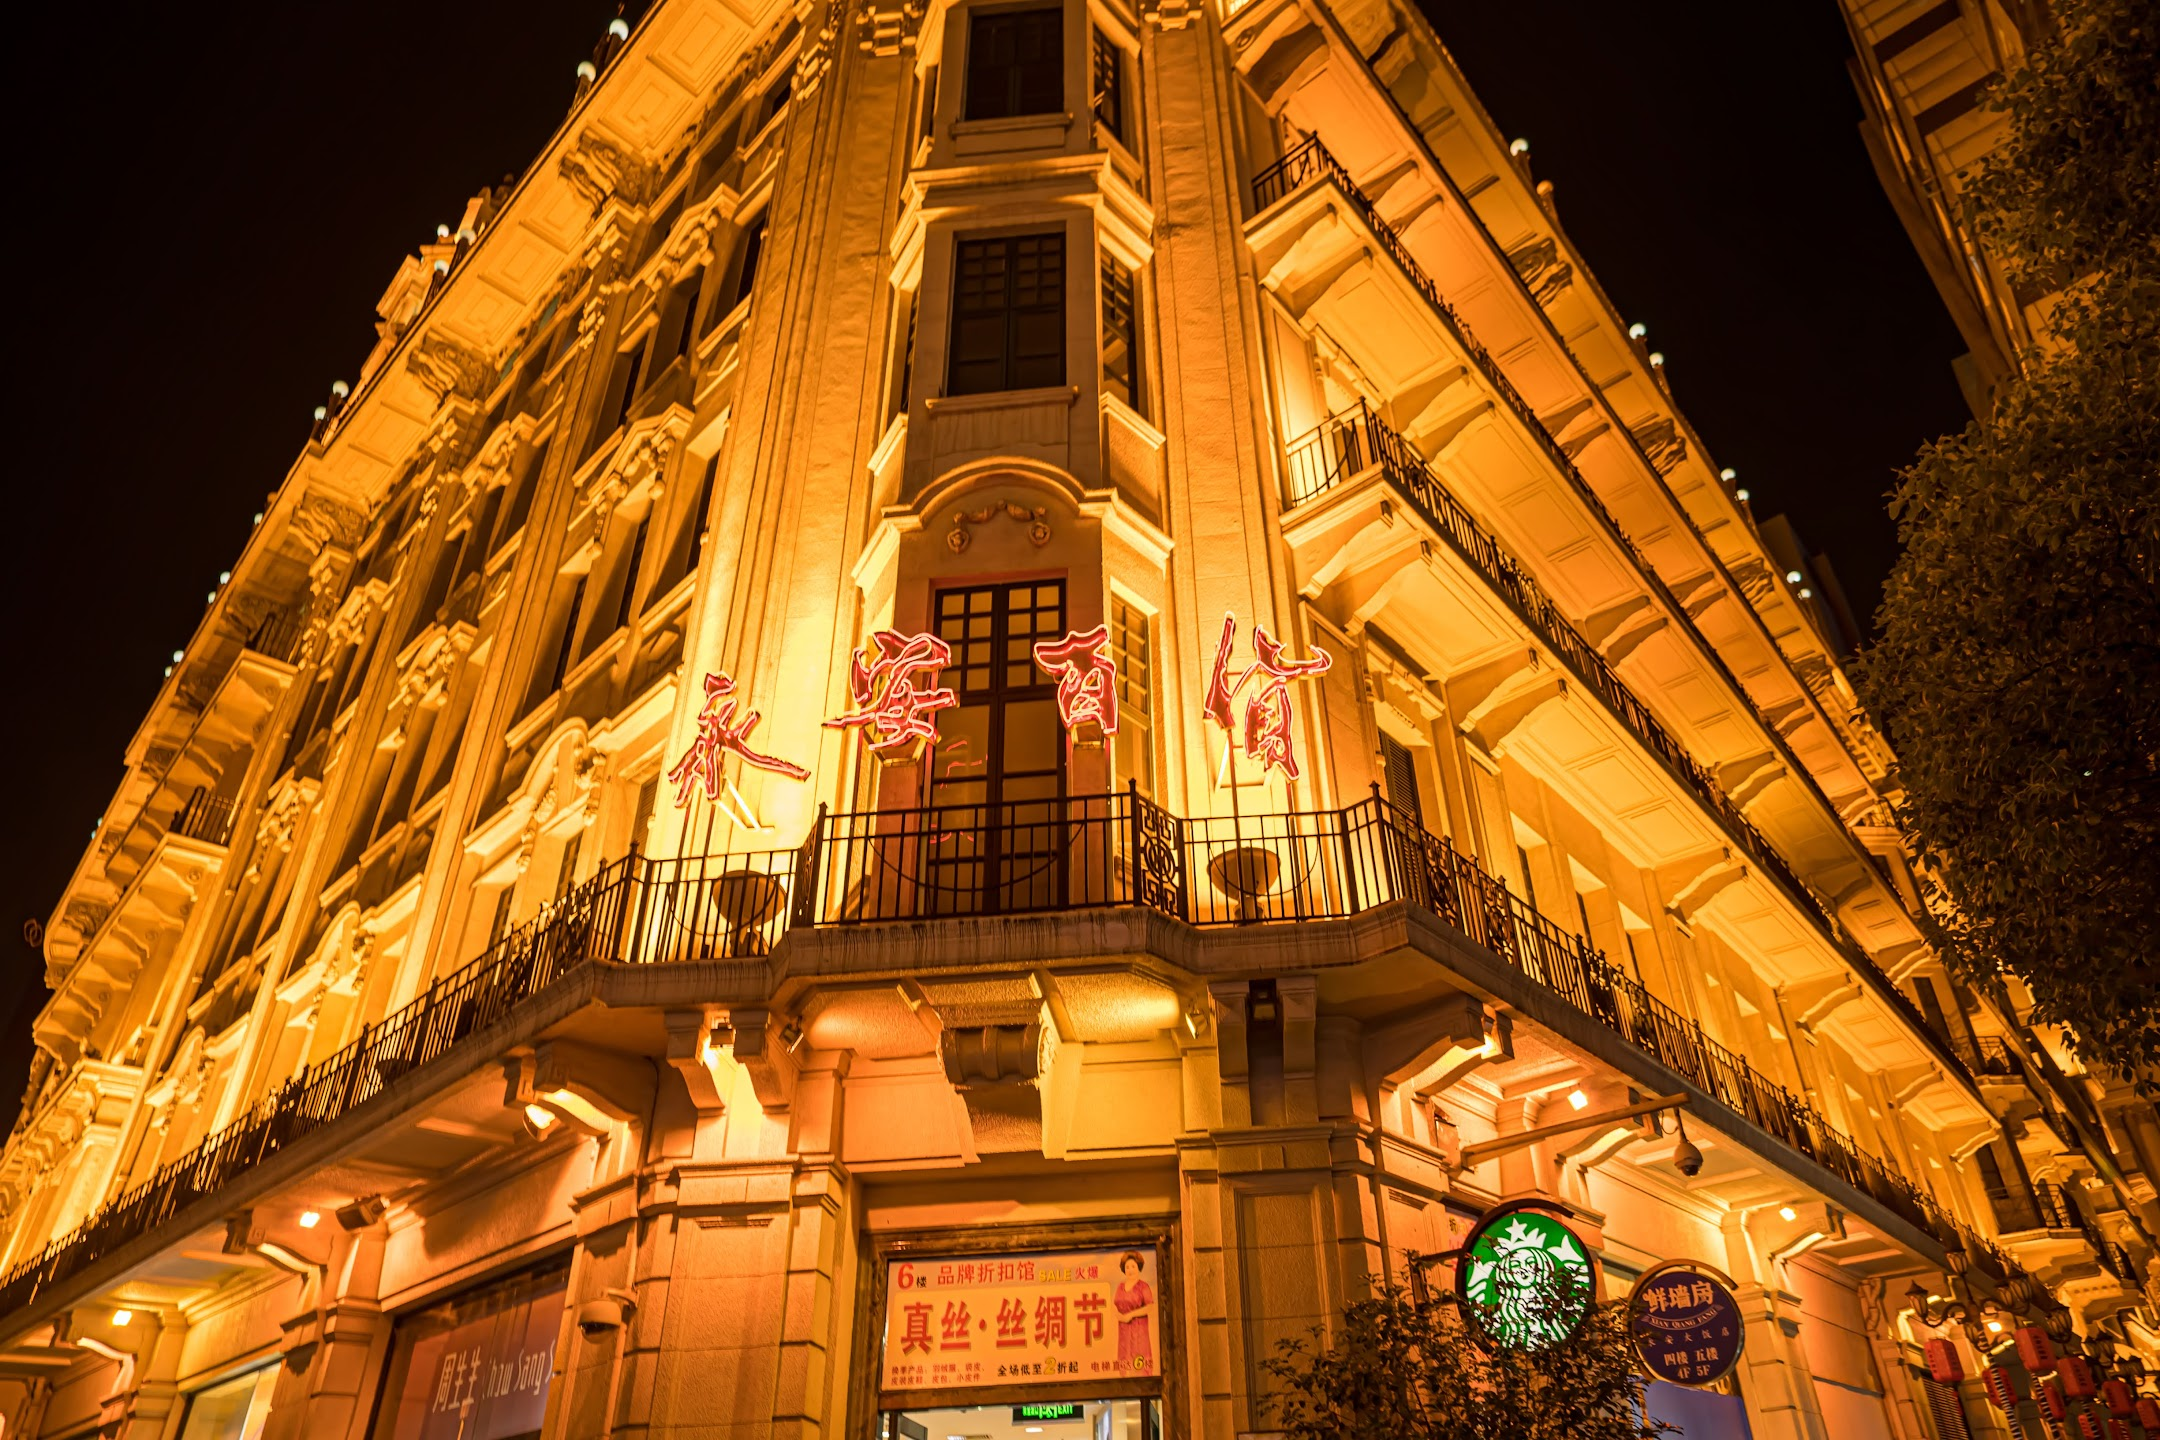 上海 南京東路 夜 永安百貨 (Wing on Department Store)